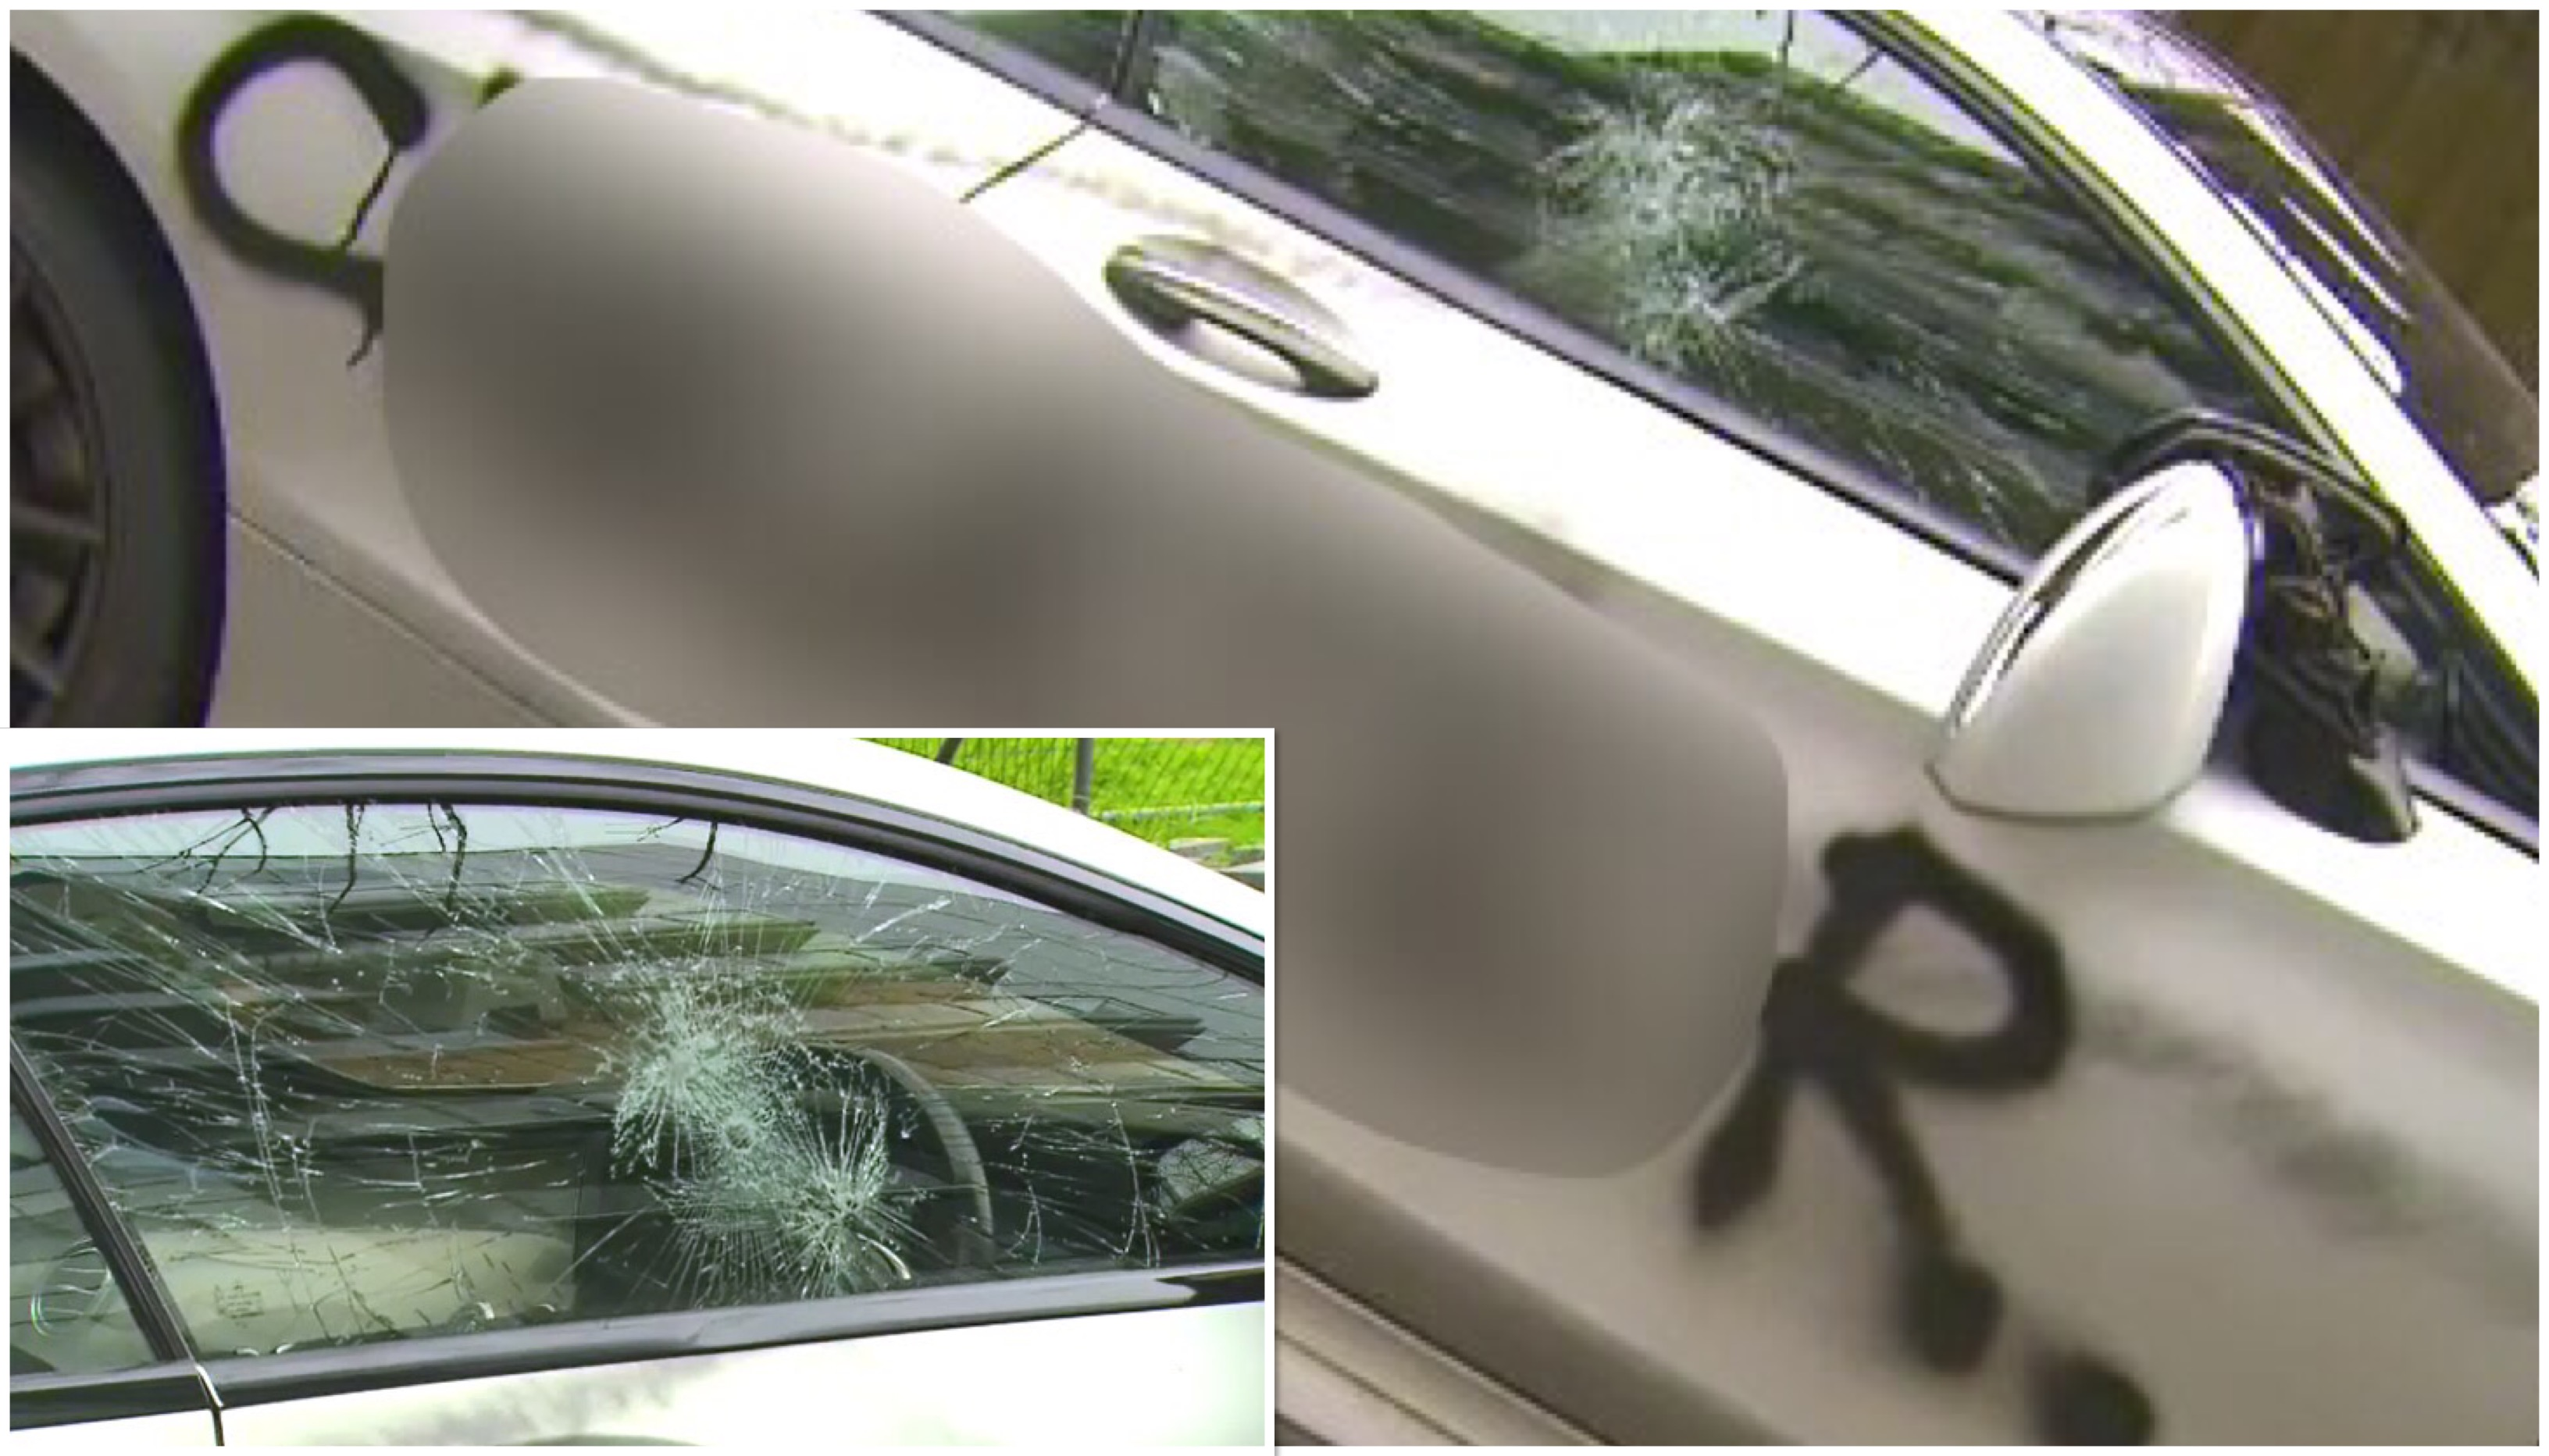 Adelaide enraged woman vandalises 400 000 mercedes benz for Mercedes benz of reno staff